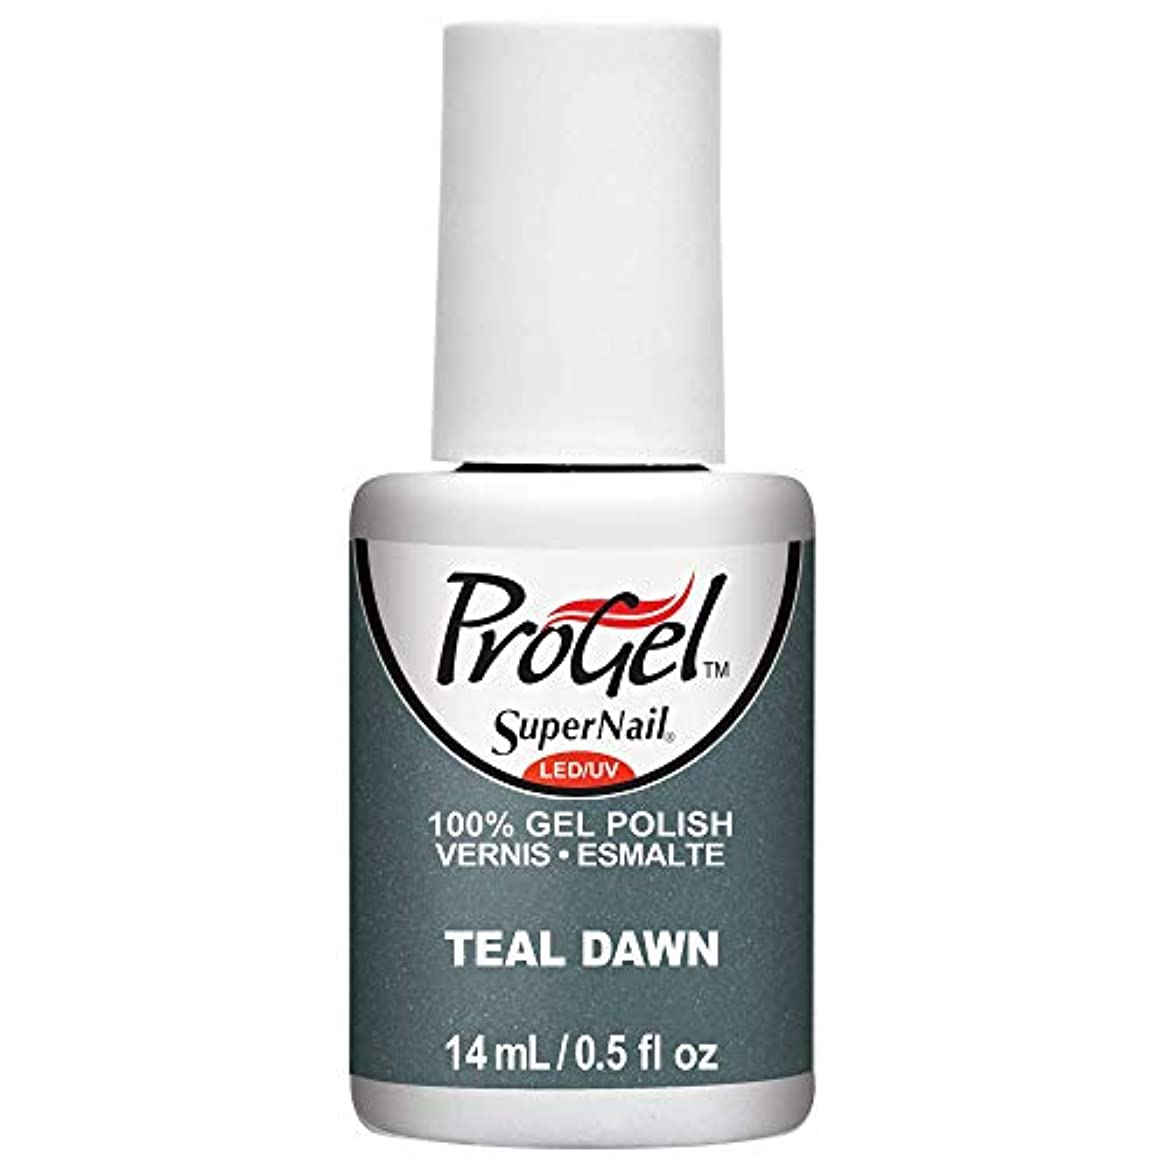 ベンチャー止まるスクランブルSuperNail ProGel Gel Polish - Teal Dawn - 0.5oz / 14ml